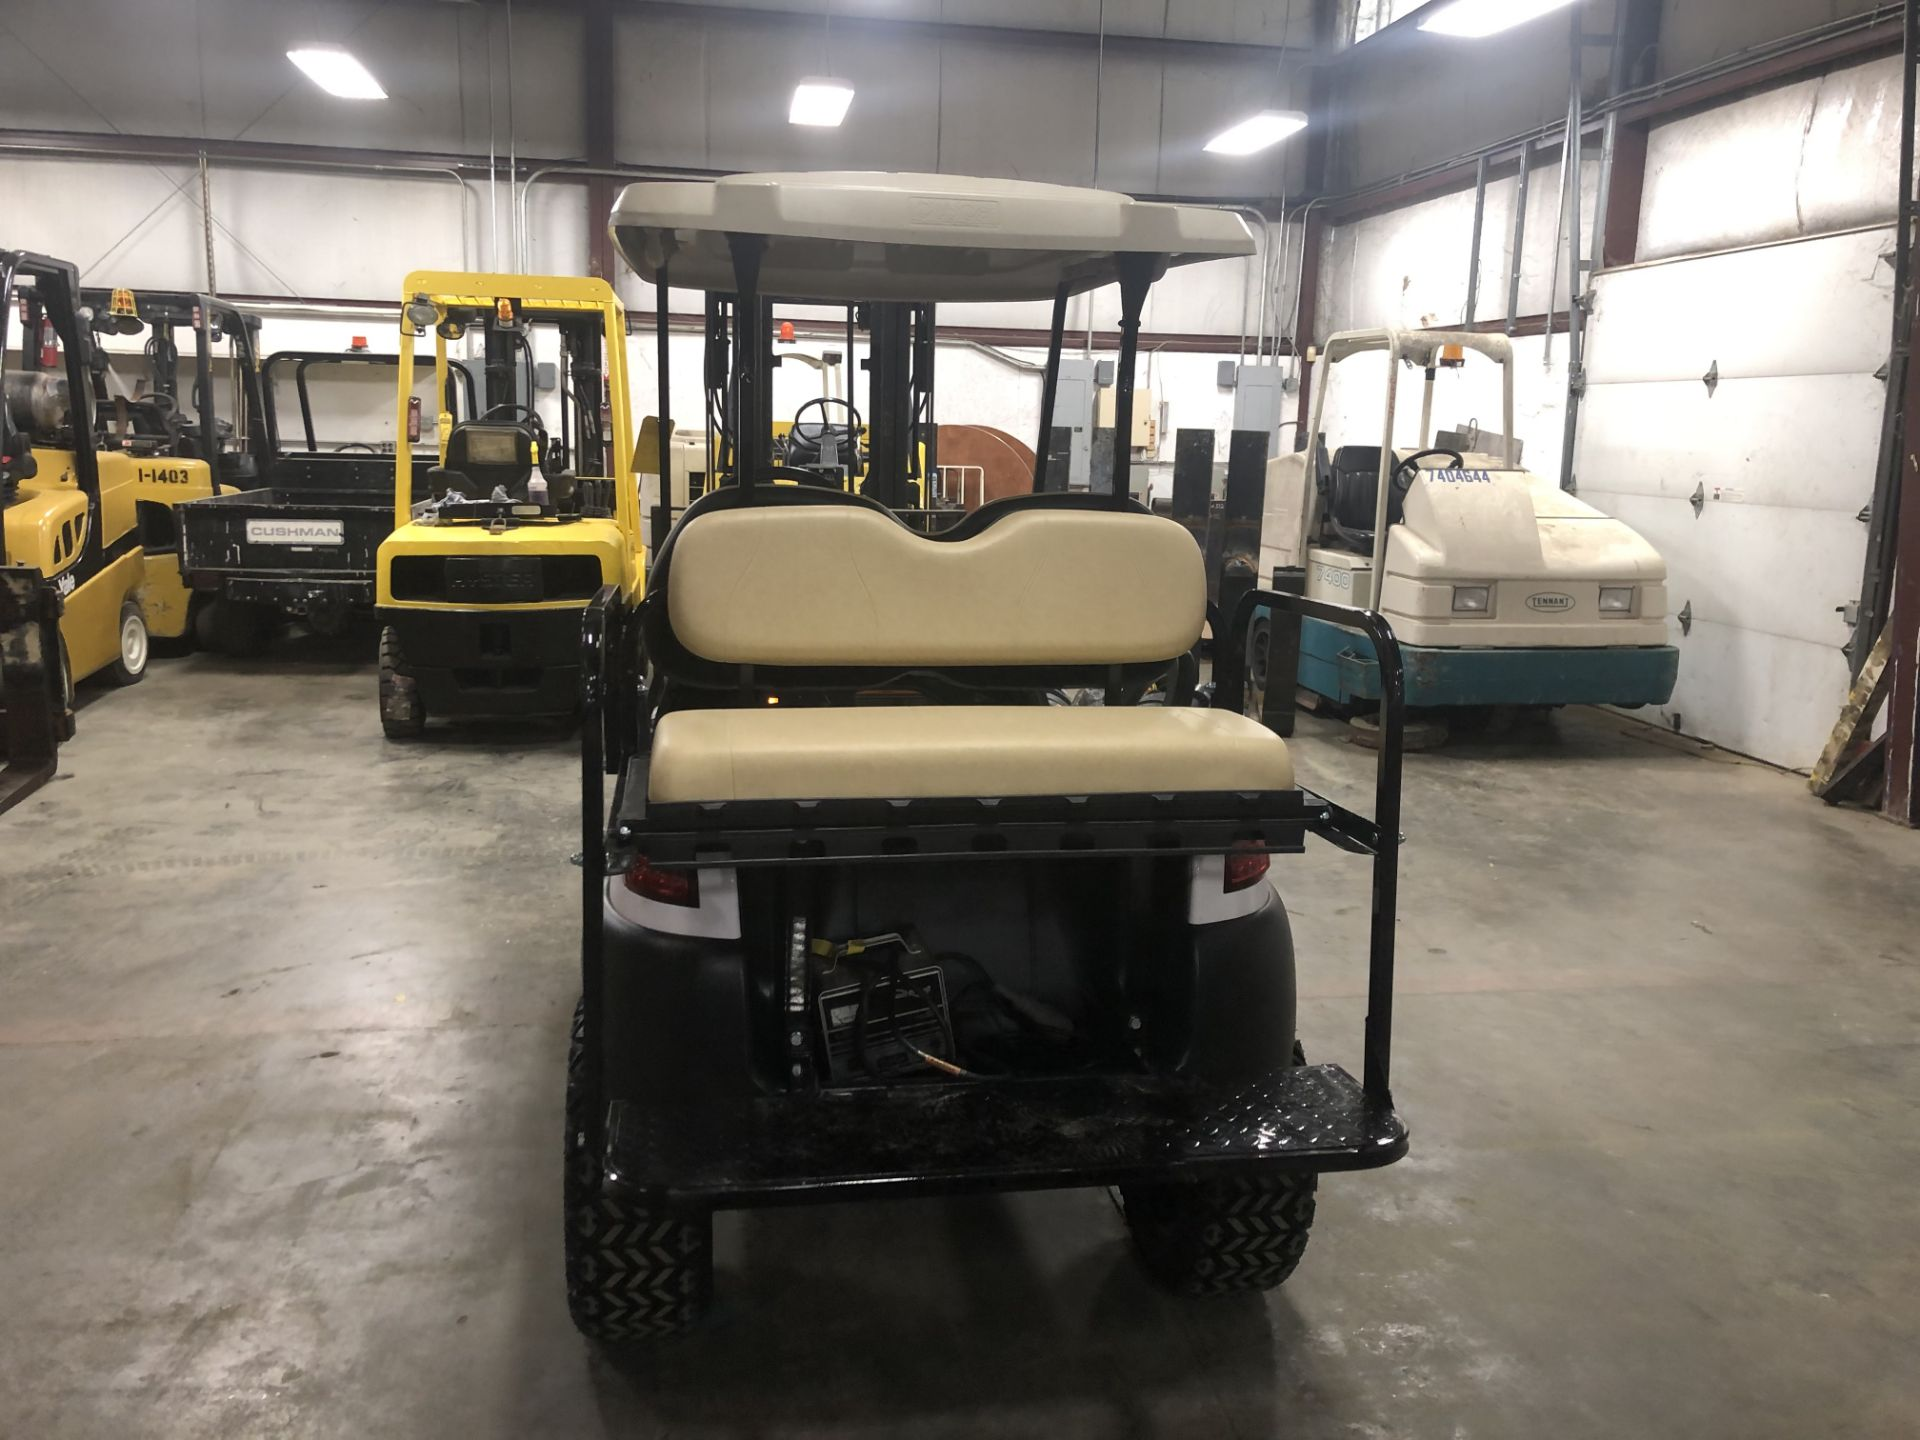 Lot 23 - 2014 CLUB CAR PRECEDENT ELECTRIC GOLF CART, WITH 48V CHARGER, 4-PASSENGER FOLD DOWN SEAT, LIFT KIT